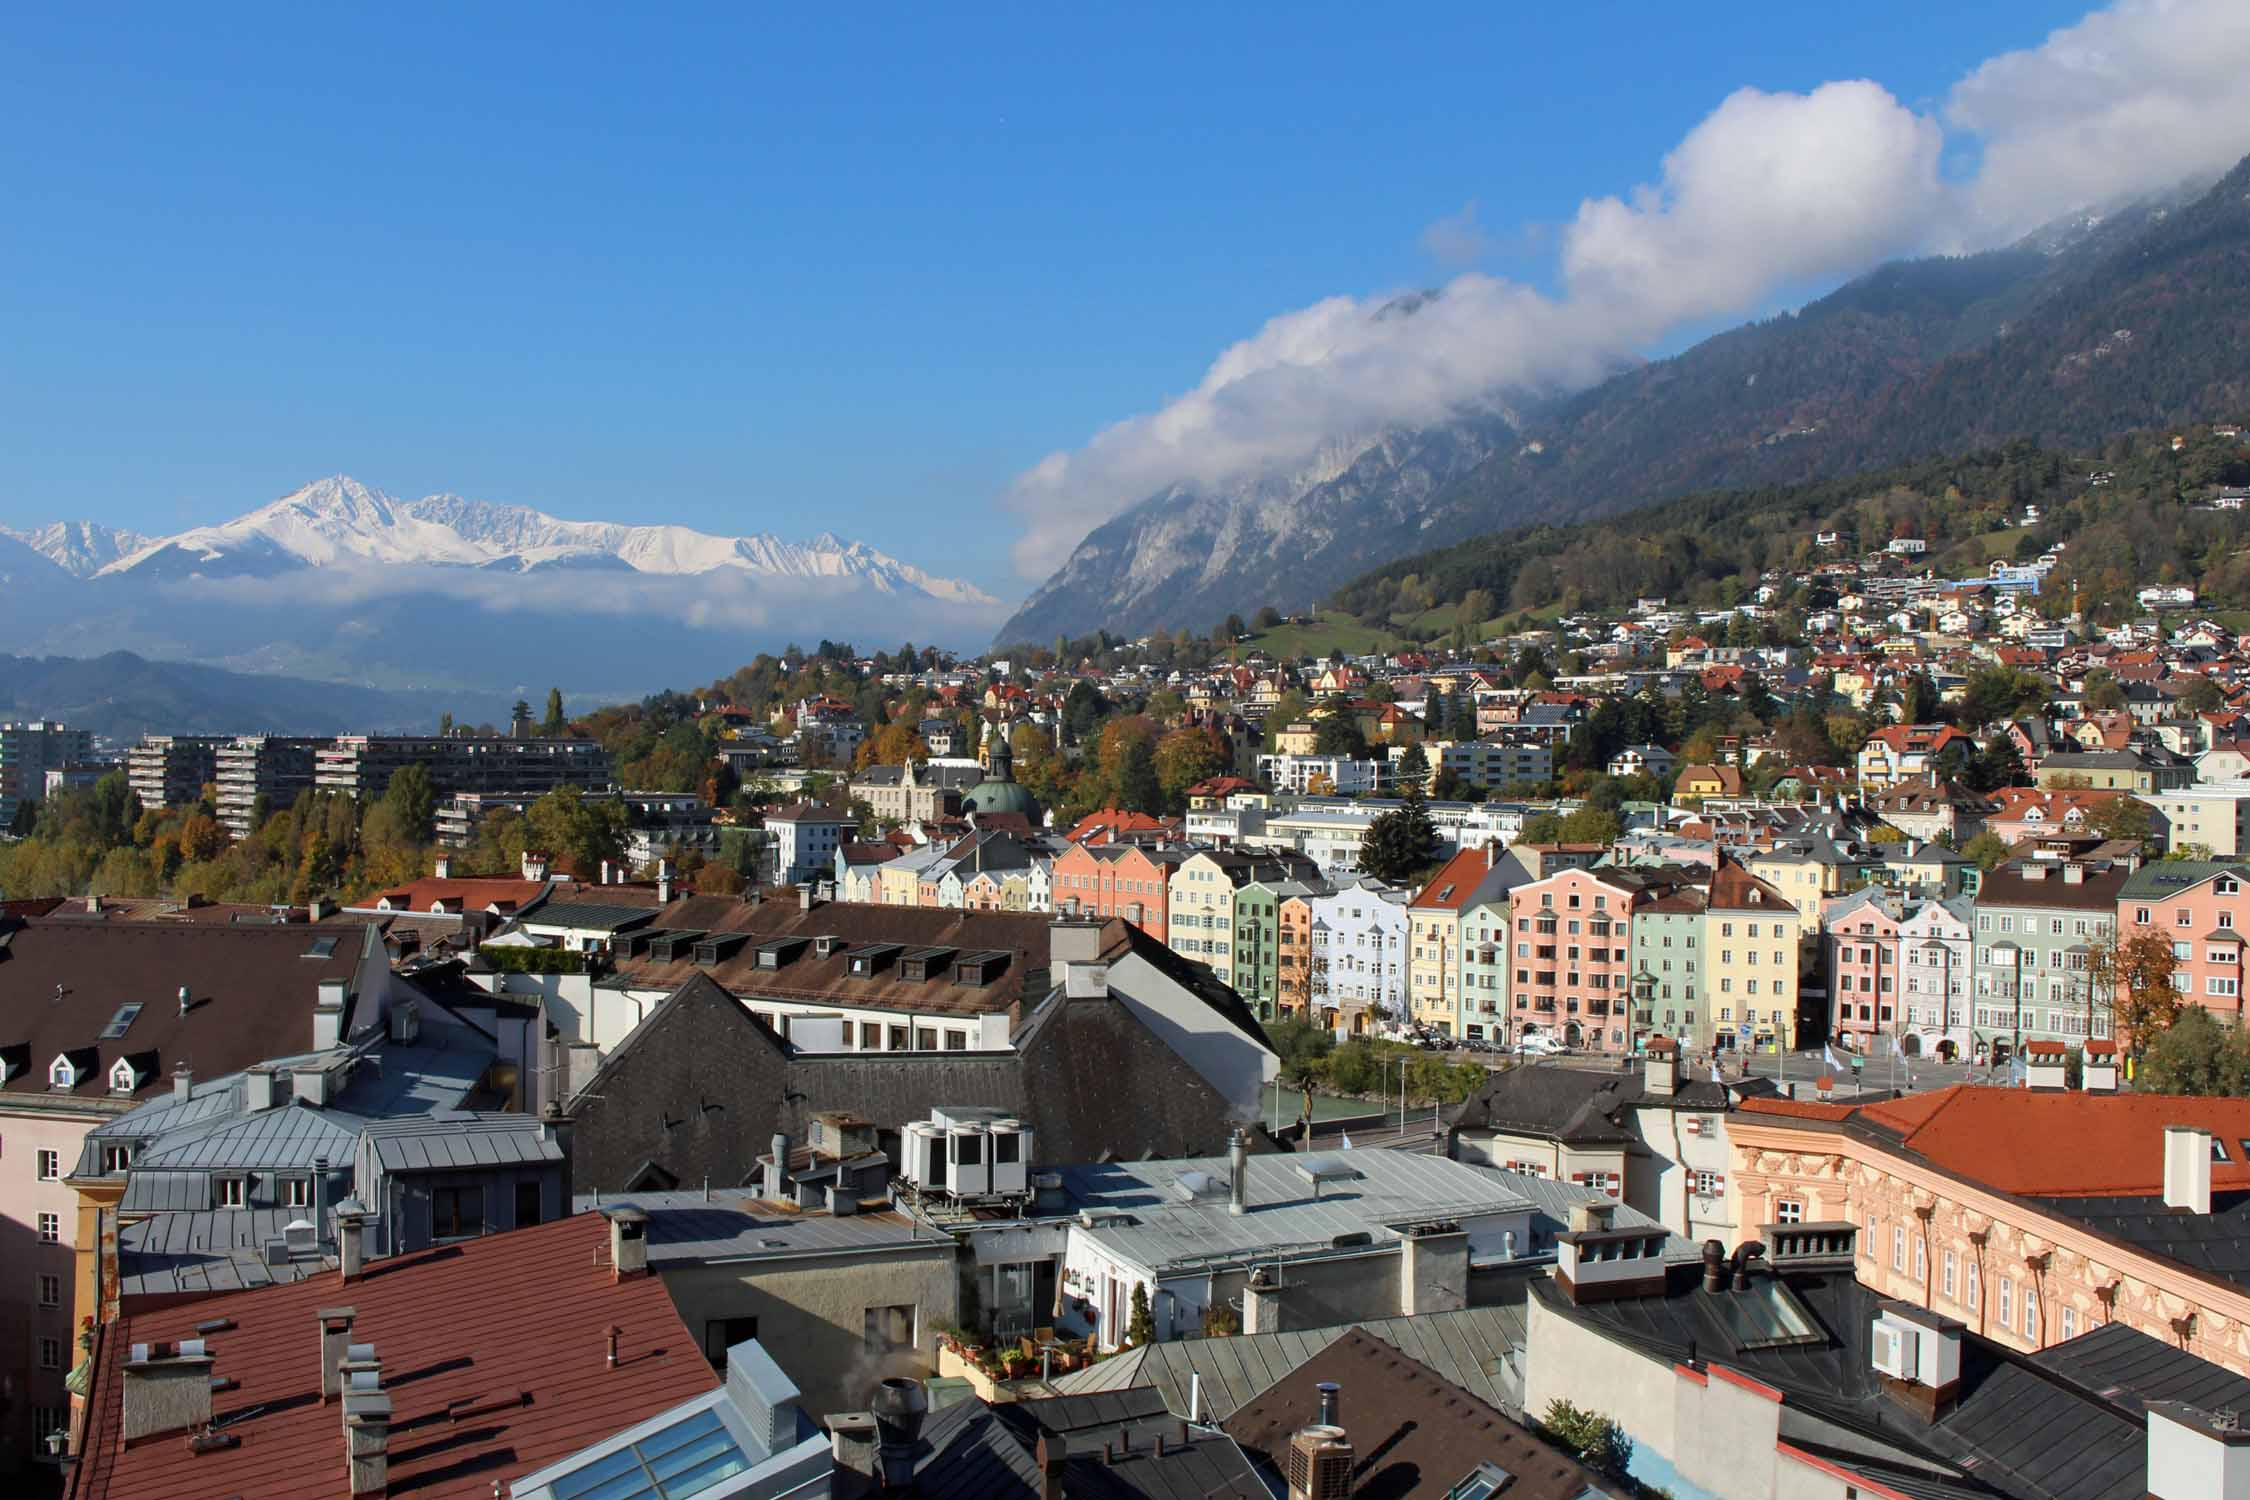 City of Innsbruck